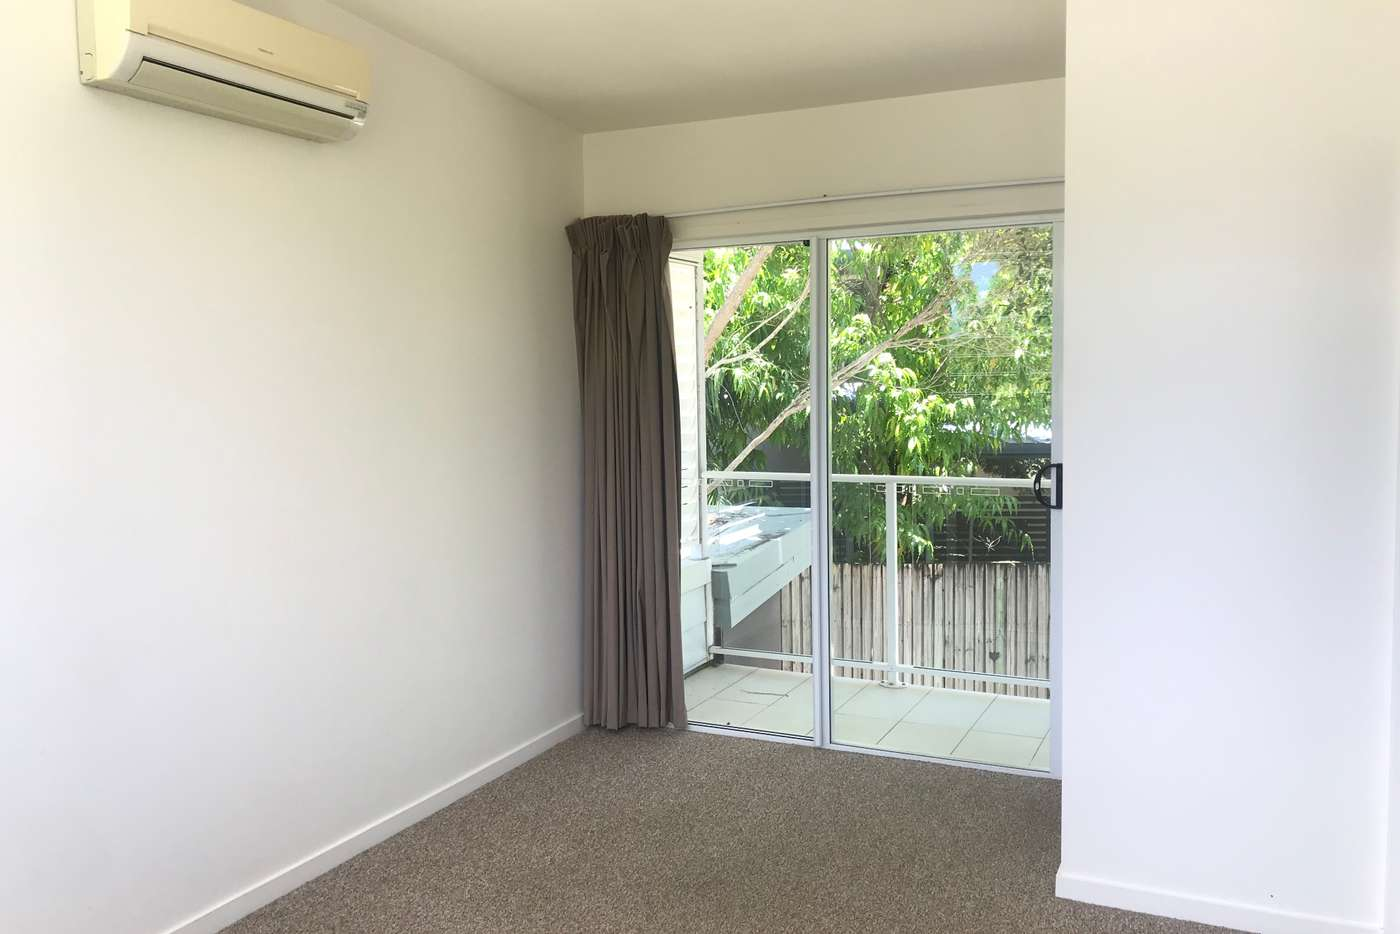 Sixth view of Homely townhouse listing, 21/4-8 Morning Close, Port Douglas QLD 4877